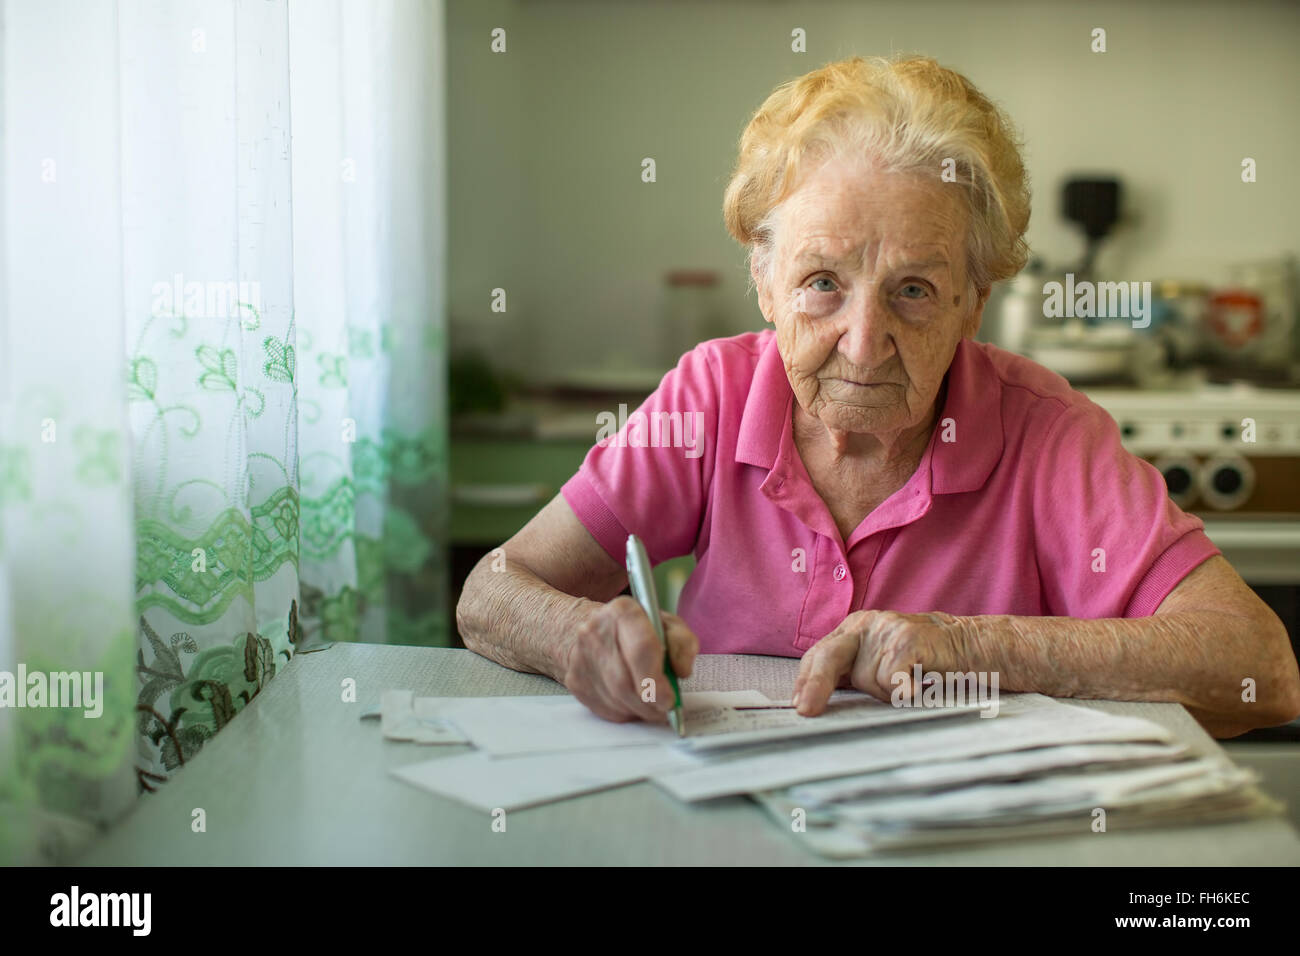 The old woman fills out utility bills sitting in the kitchen. - Stock Image